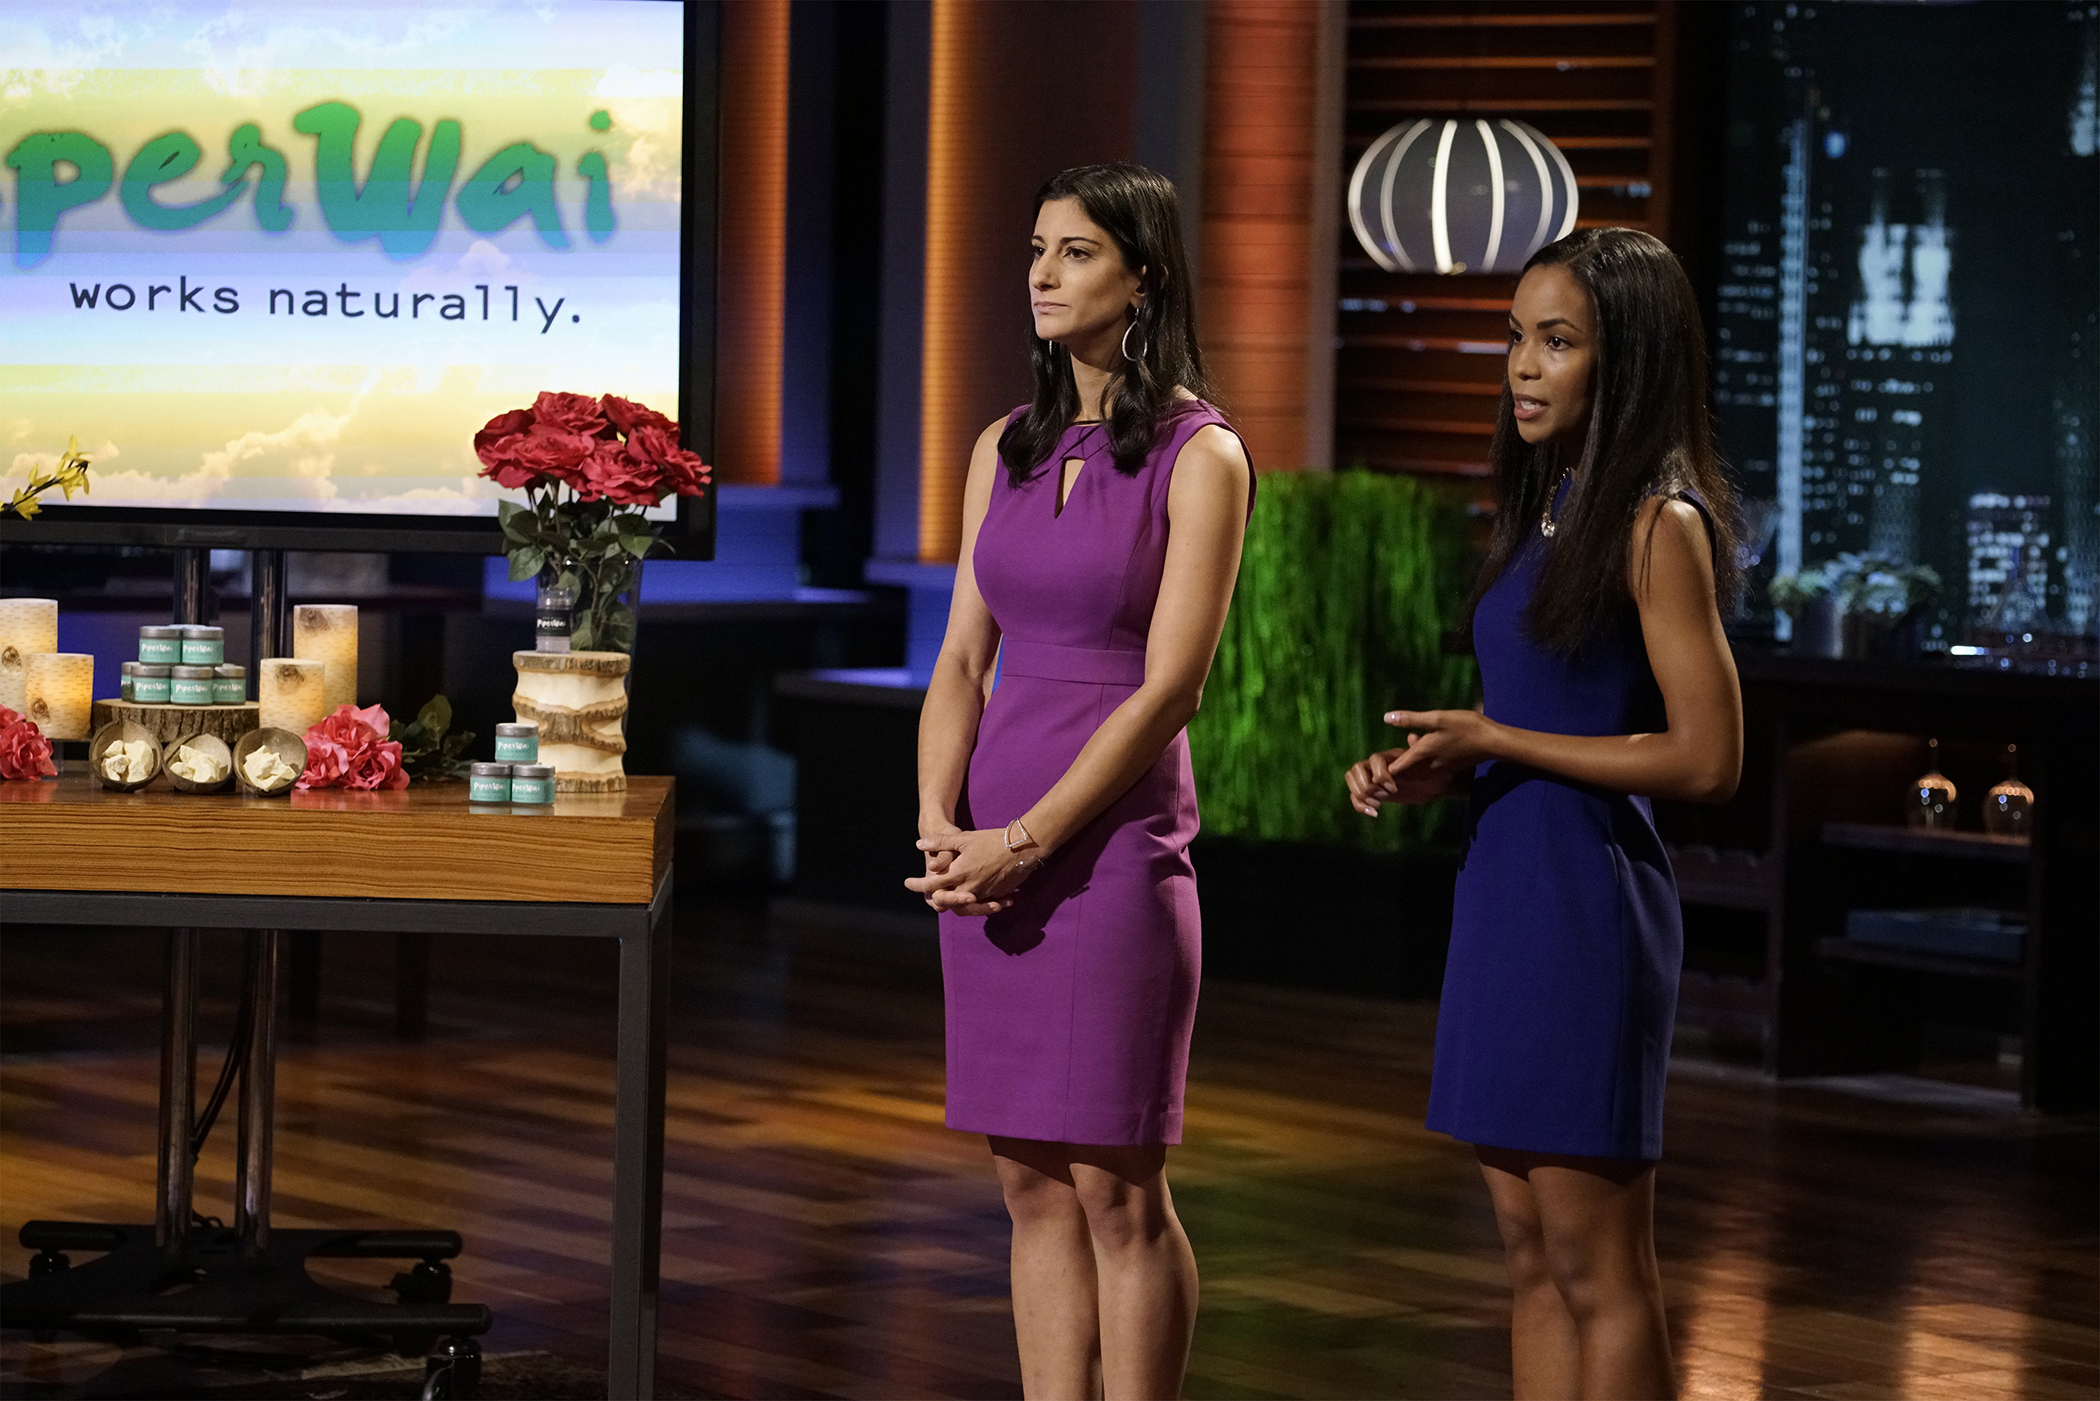 On  Shark Tank  TV show, two young business owners demonstrate their natural deodorant.